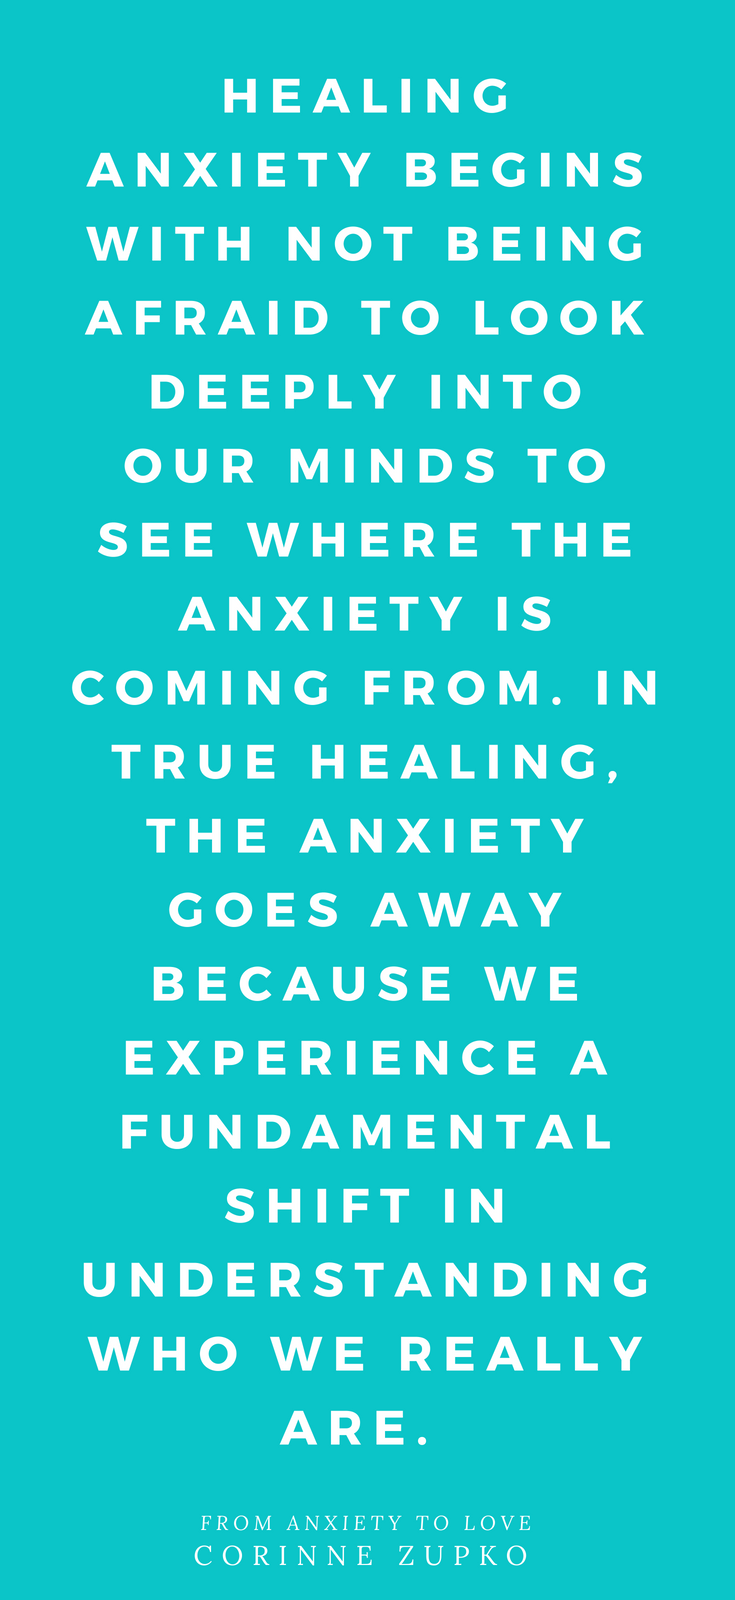 From Anxiety to Love by Corinne Zupko • Peace to the People • Podcasts • A Blog About Books • Health • Wellness • Mindfulness • Meditation • Self-Esteem • Self-Love • Motivation • True Healing.png